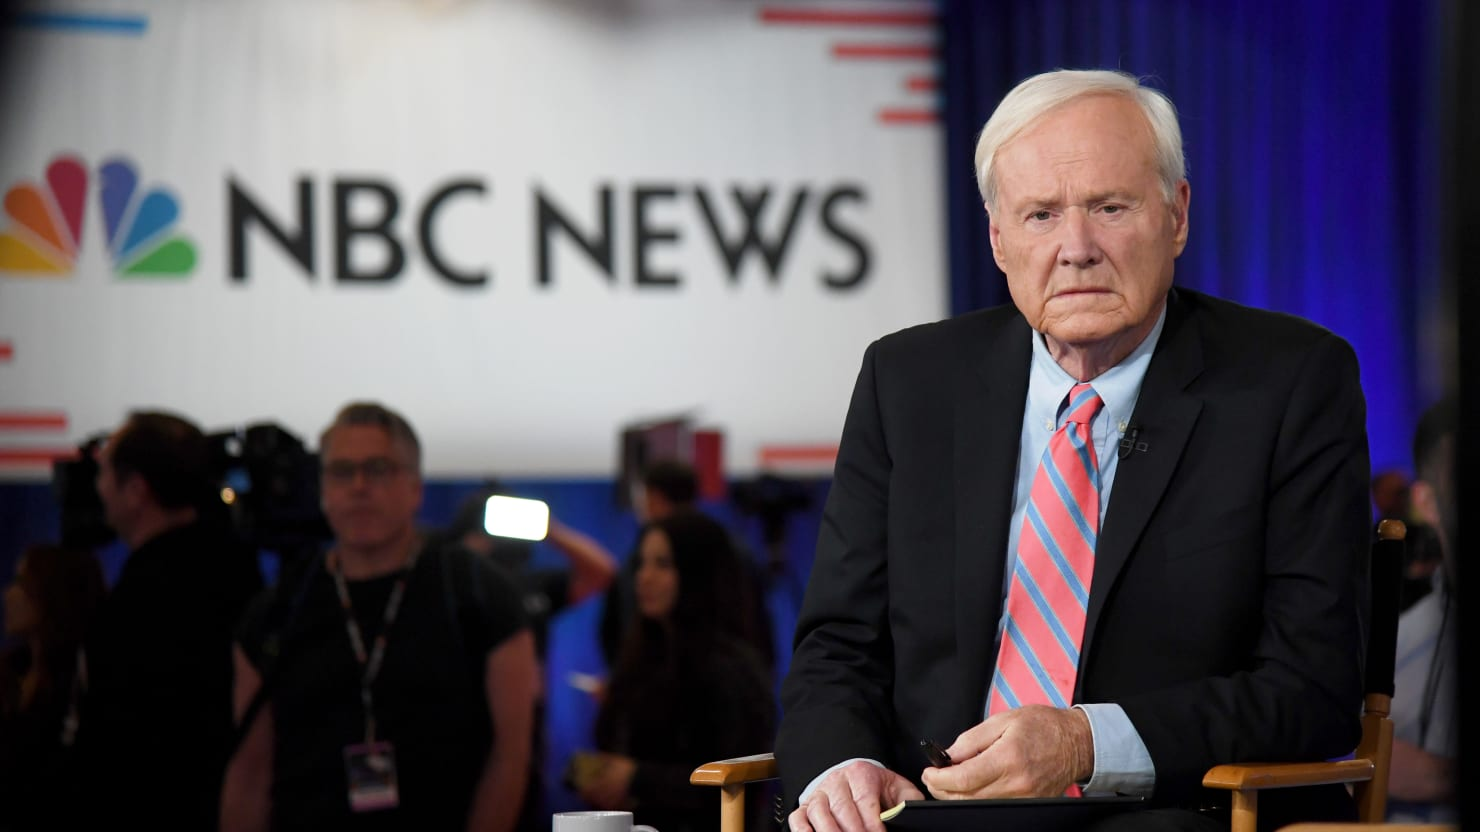 Embattled Chris Matthews Left Out of MSNBC's S.C. Primary Coverage